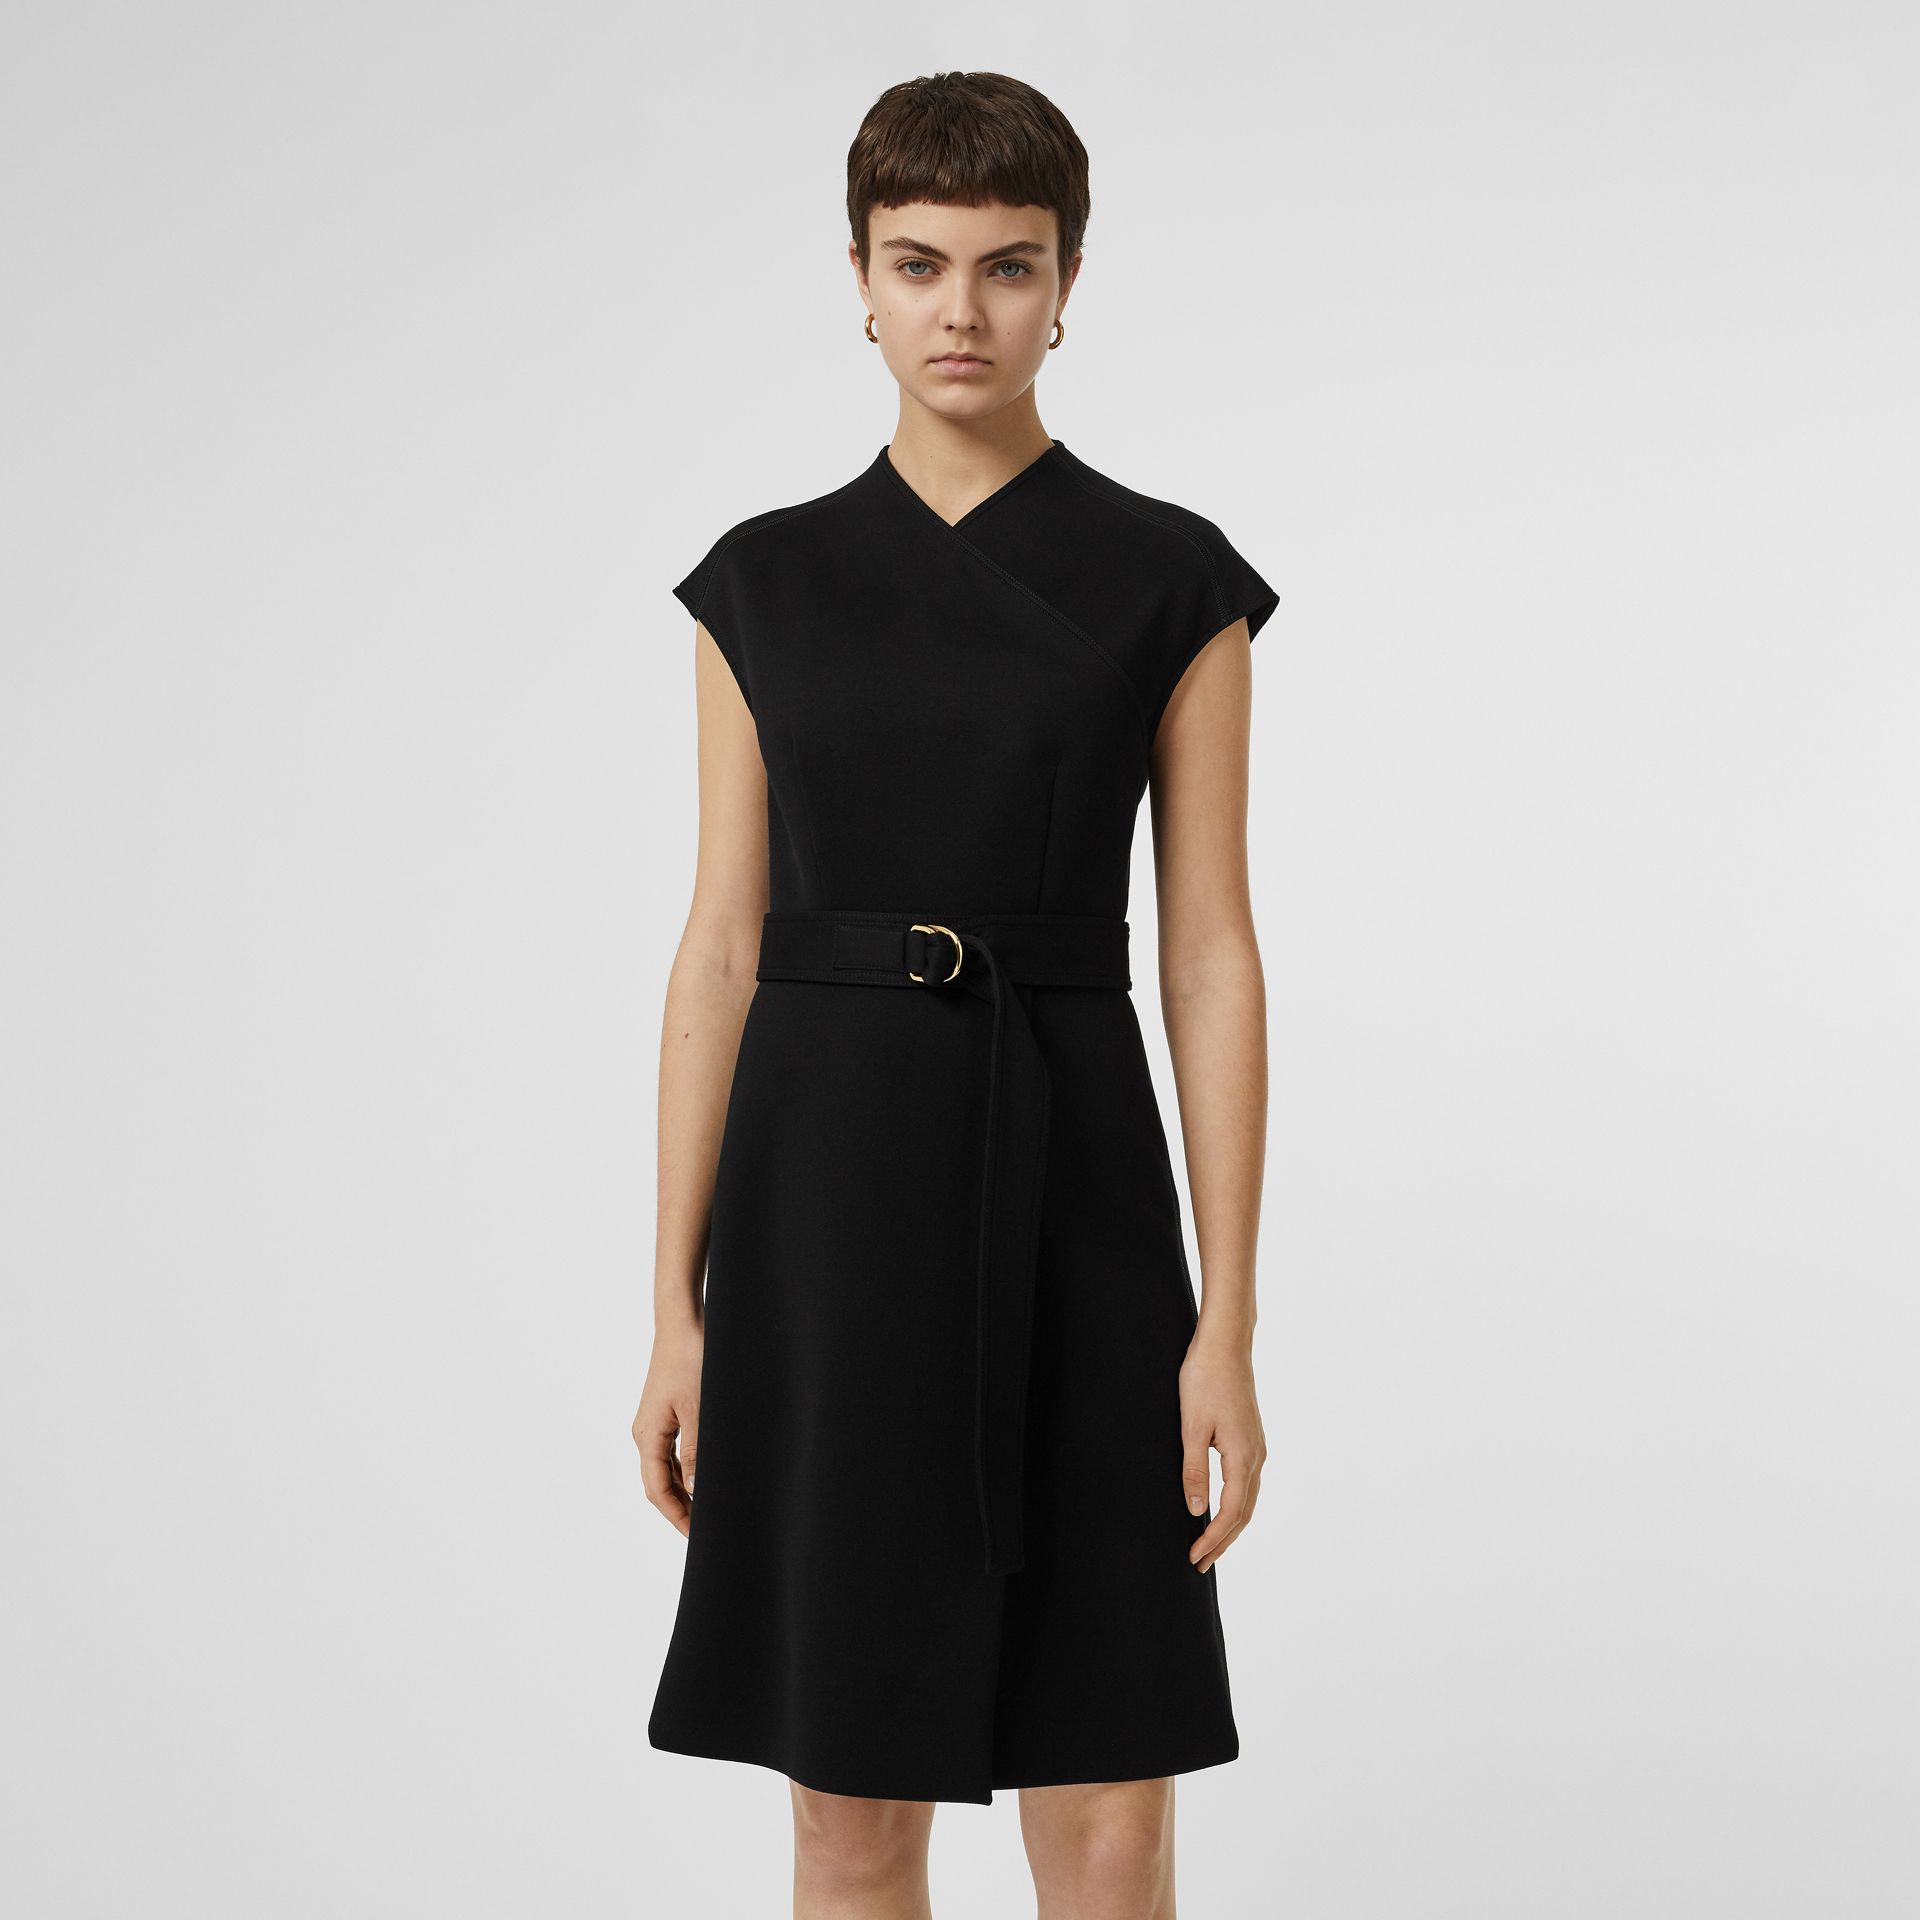 D-ring Detail Bonded Jersey Dress in Black - Women | Burberry United Kingdom - gallery image 5